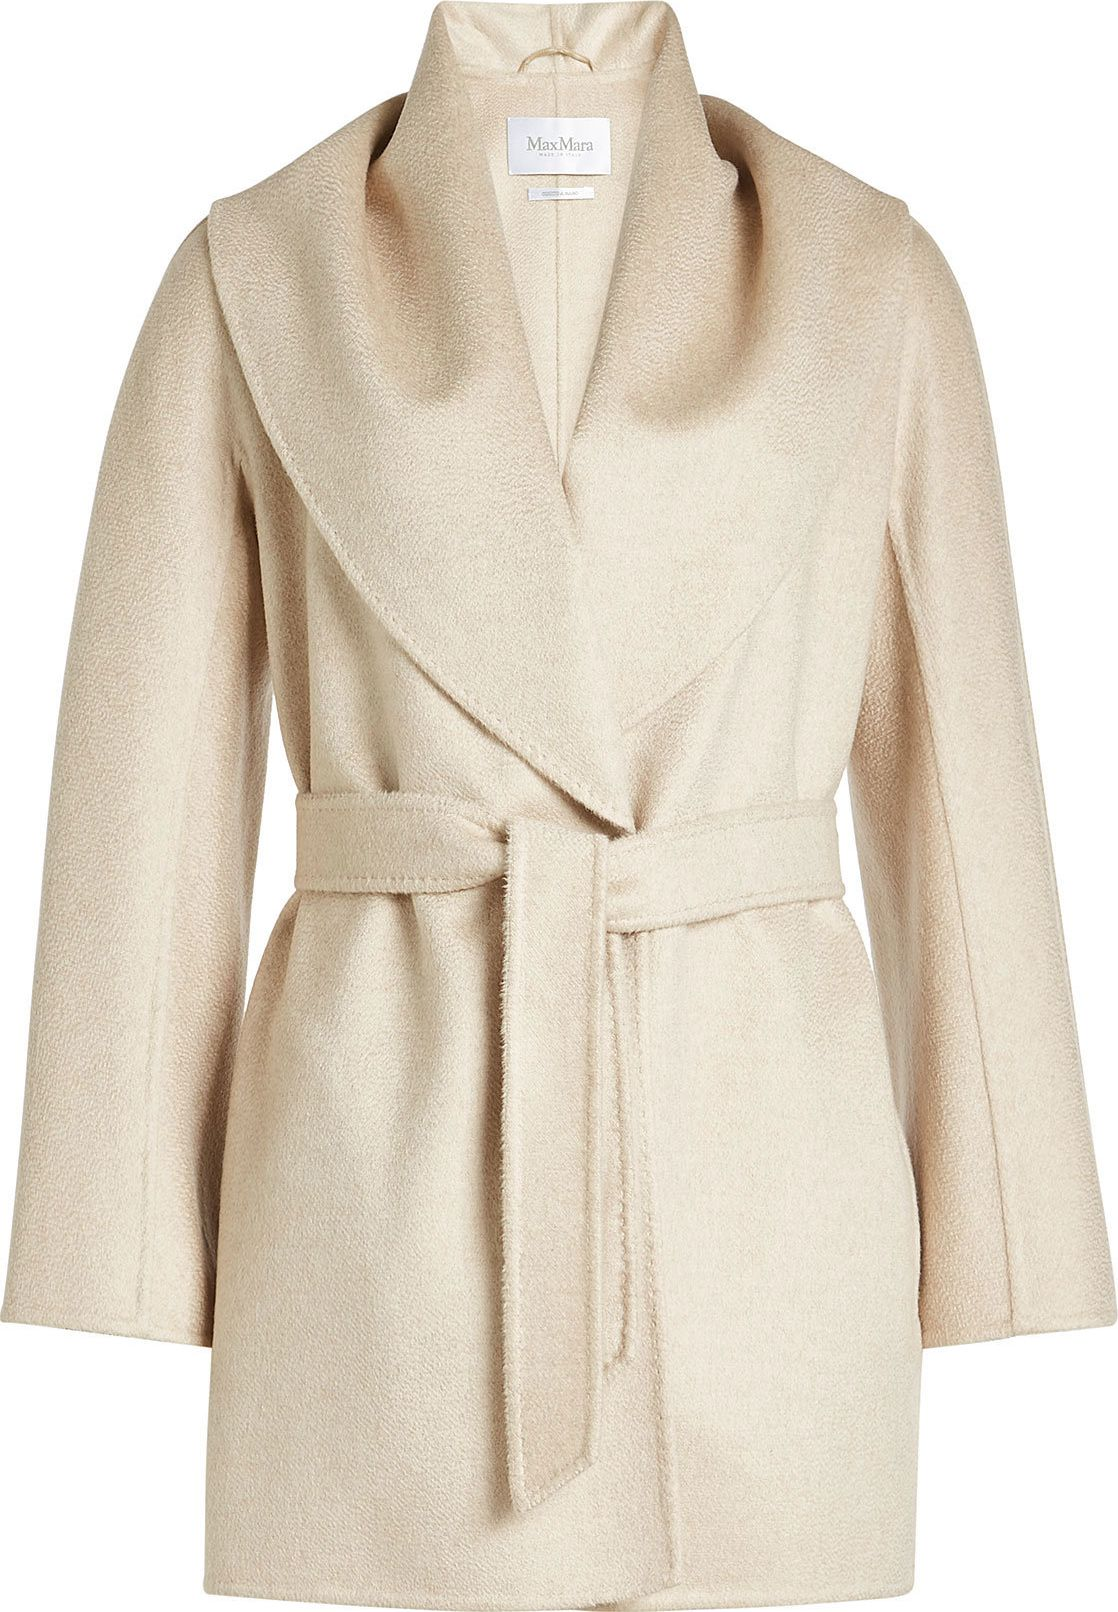 Max Mara - Belted Wool Jacket